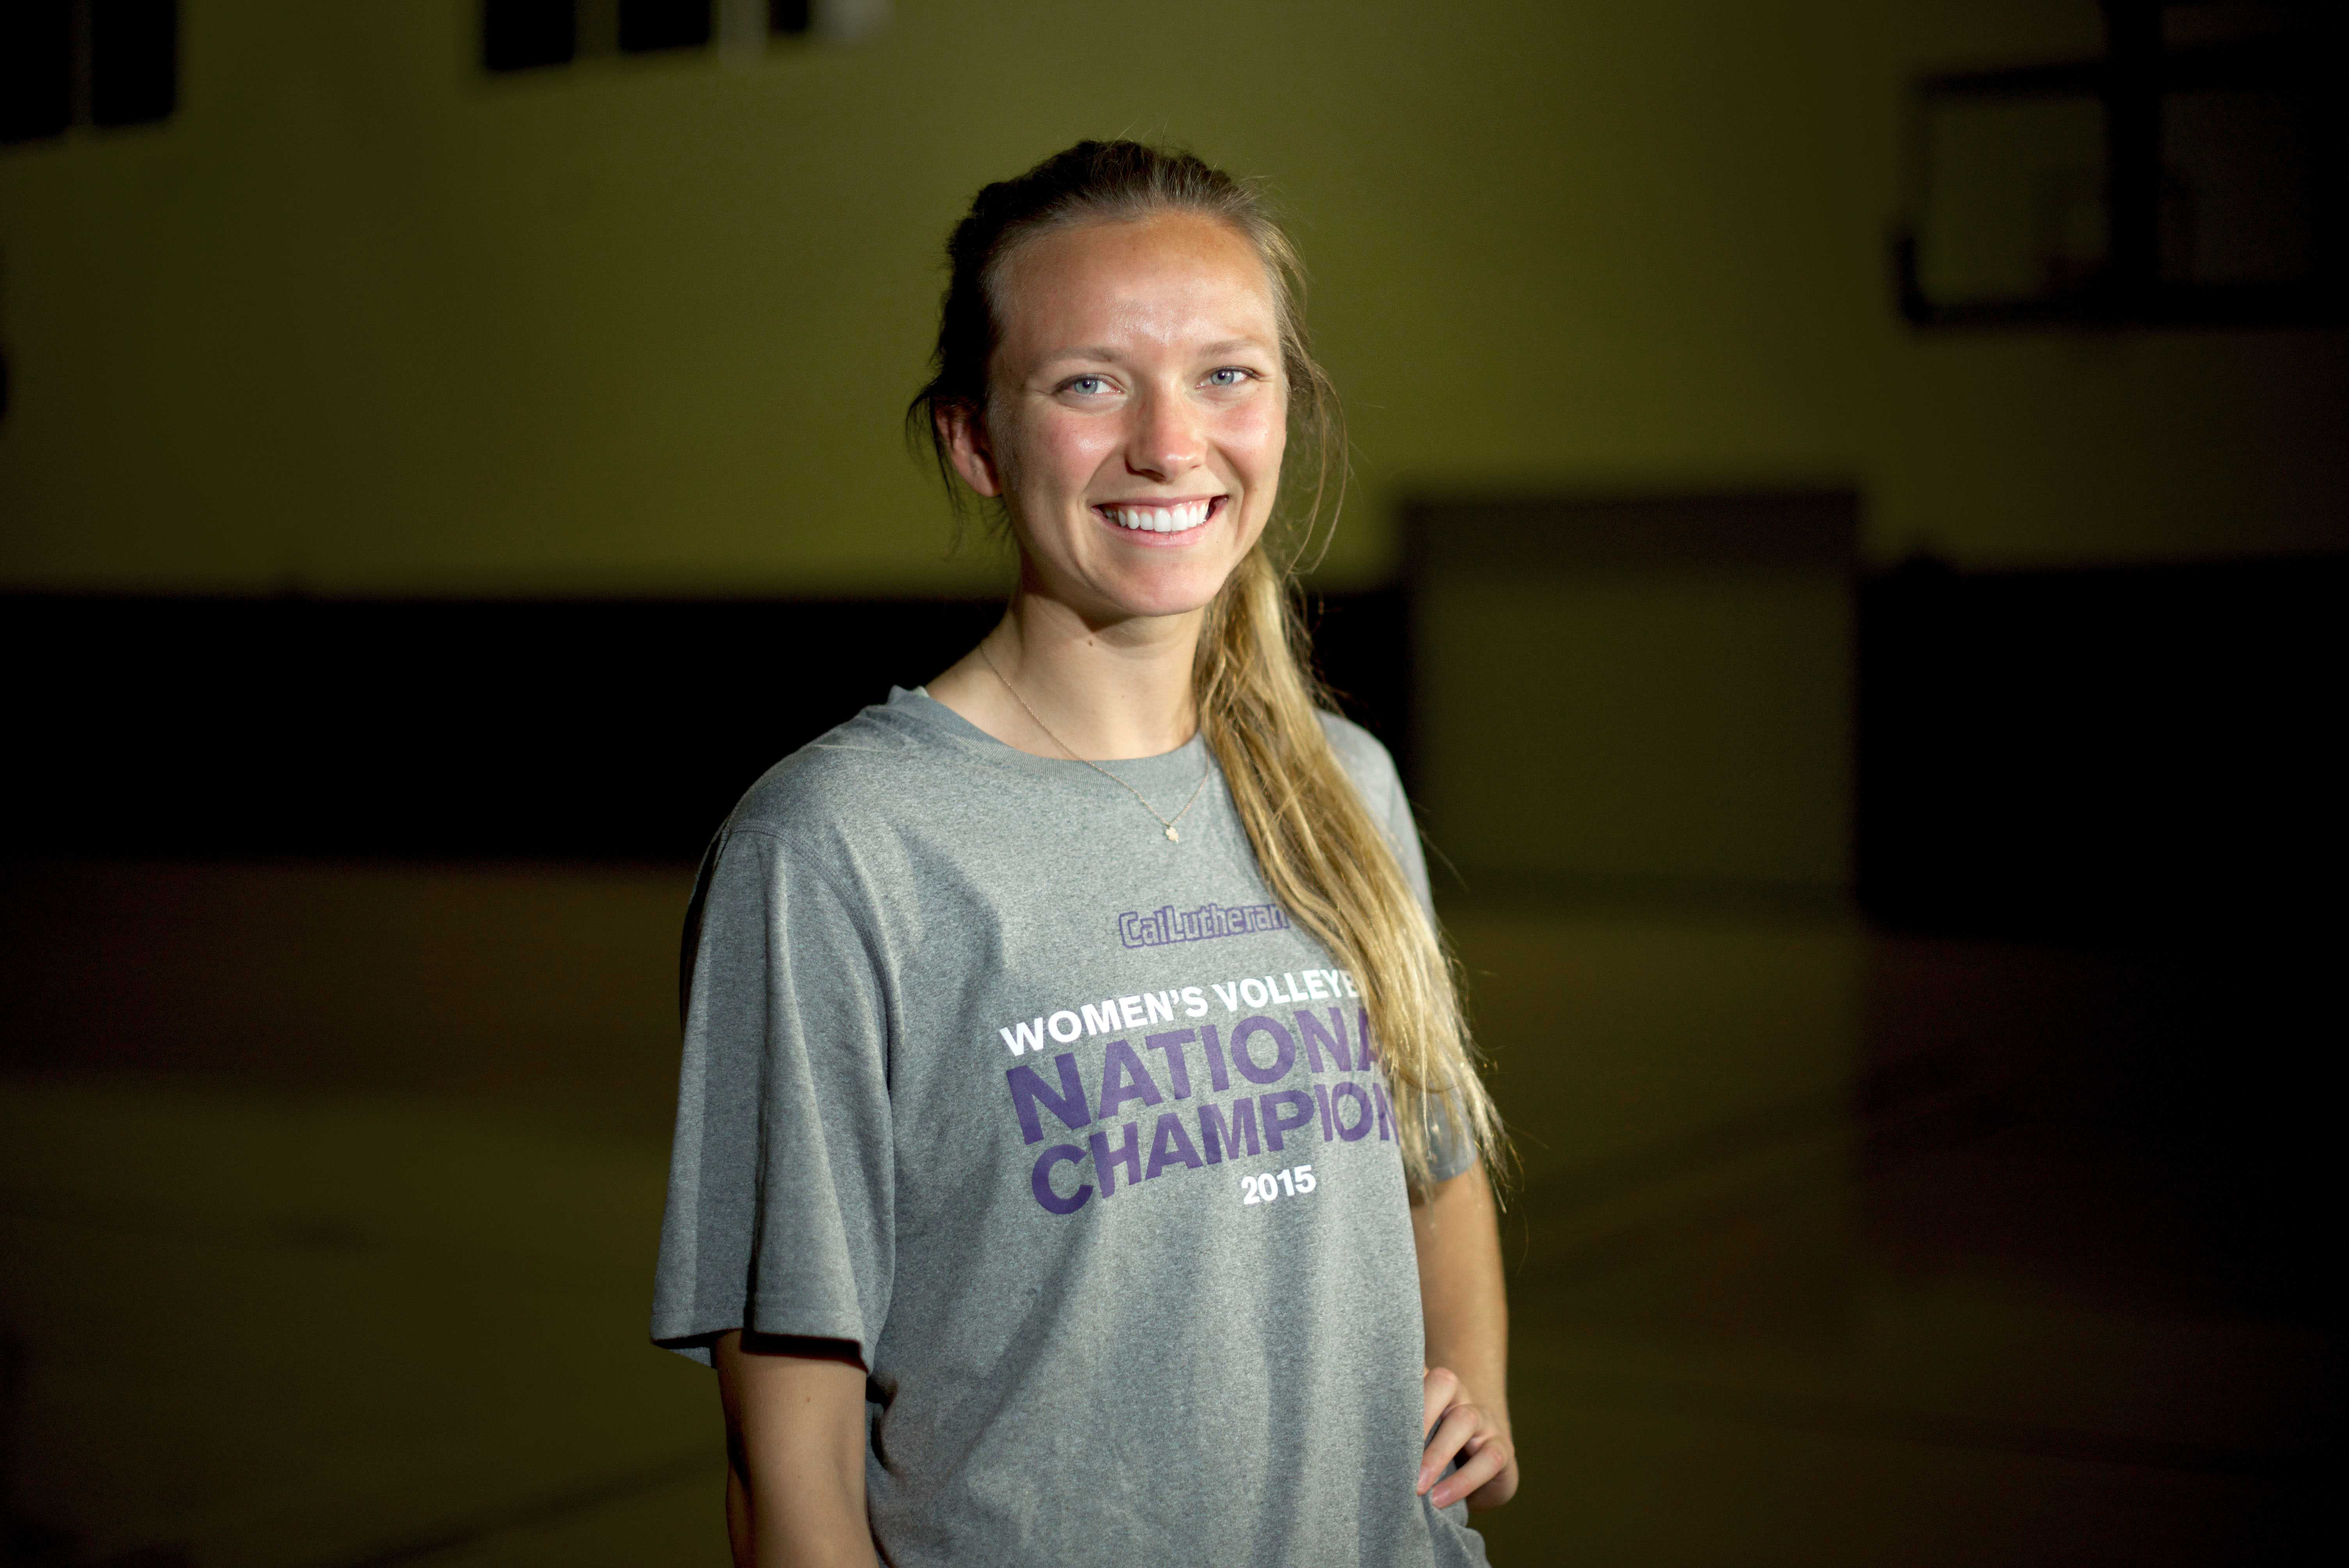 Female Athlete of the Year Allie Eason helped lead the Regals Volleyball team to Cal Lutheran's first NCAA National Championship.  Photo by Eric Duchanin - Senior Photographer